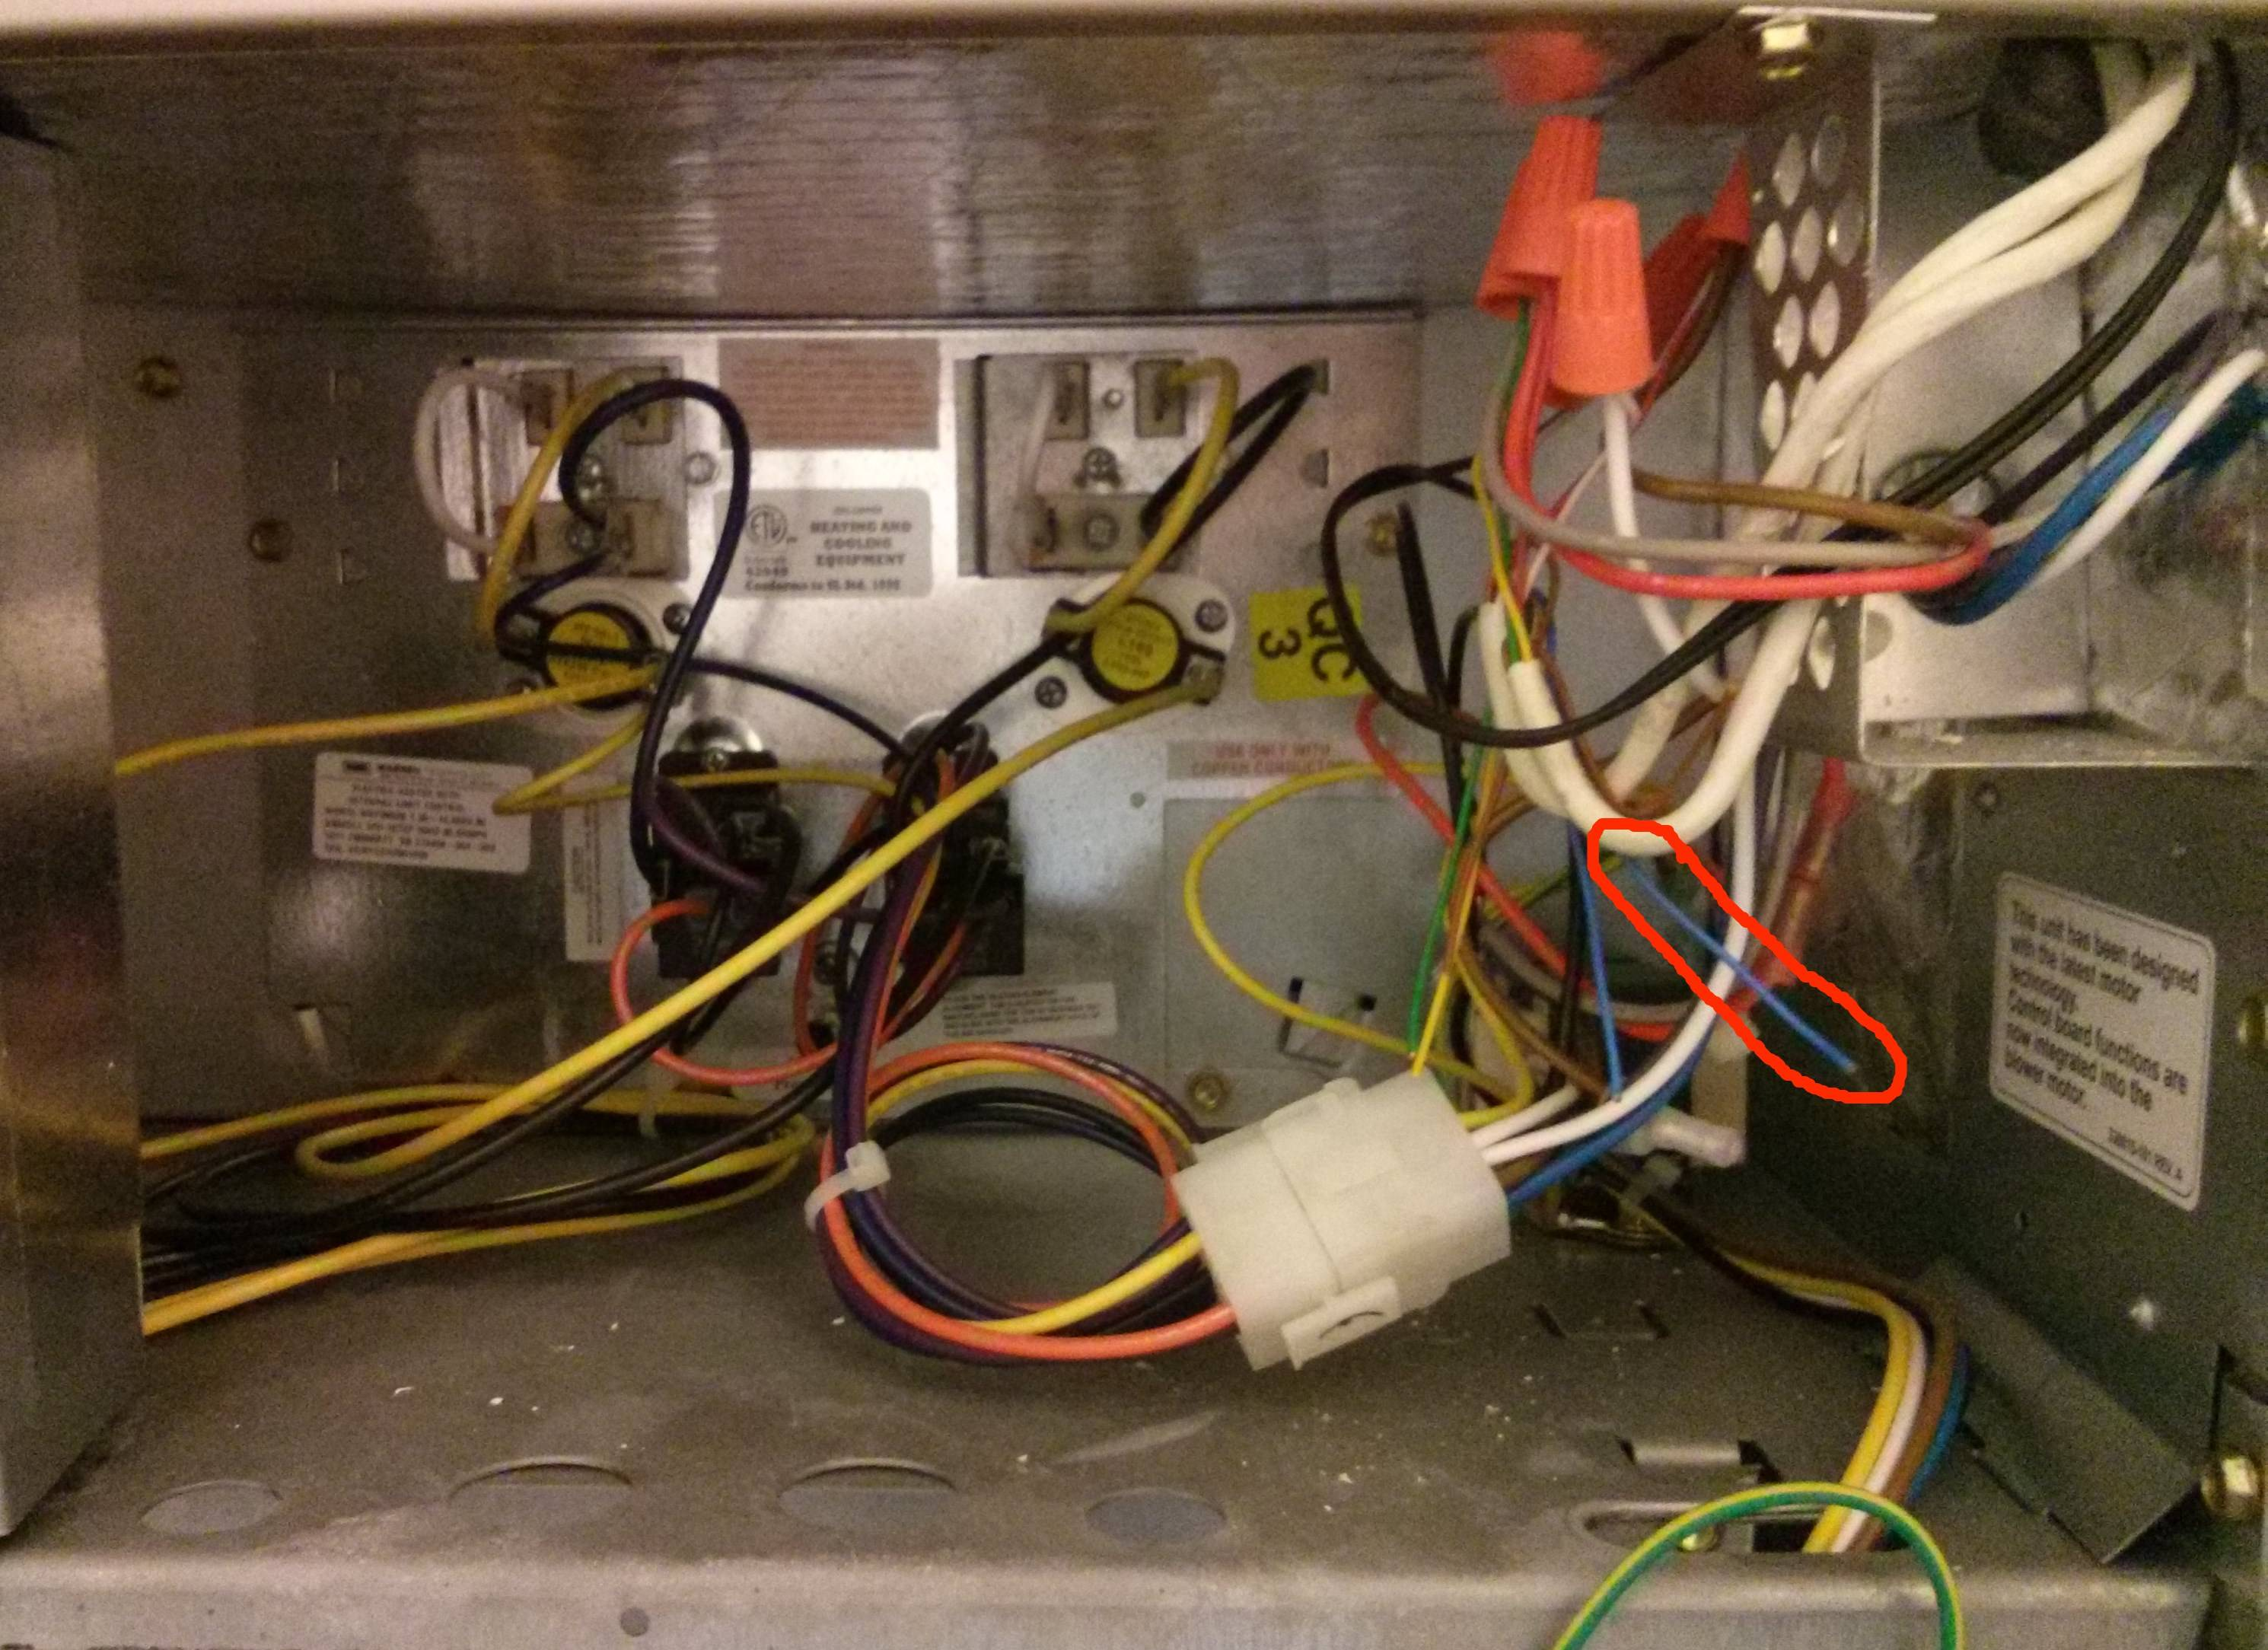 carrier wiring diagram air handler 2008 suzuki gsxr 600 how do i connect the common wire in a